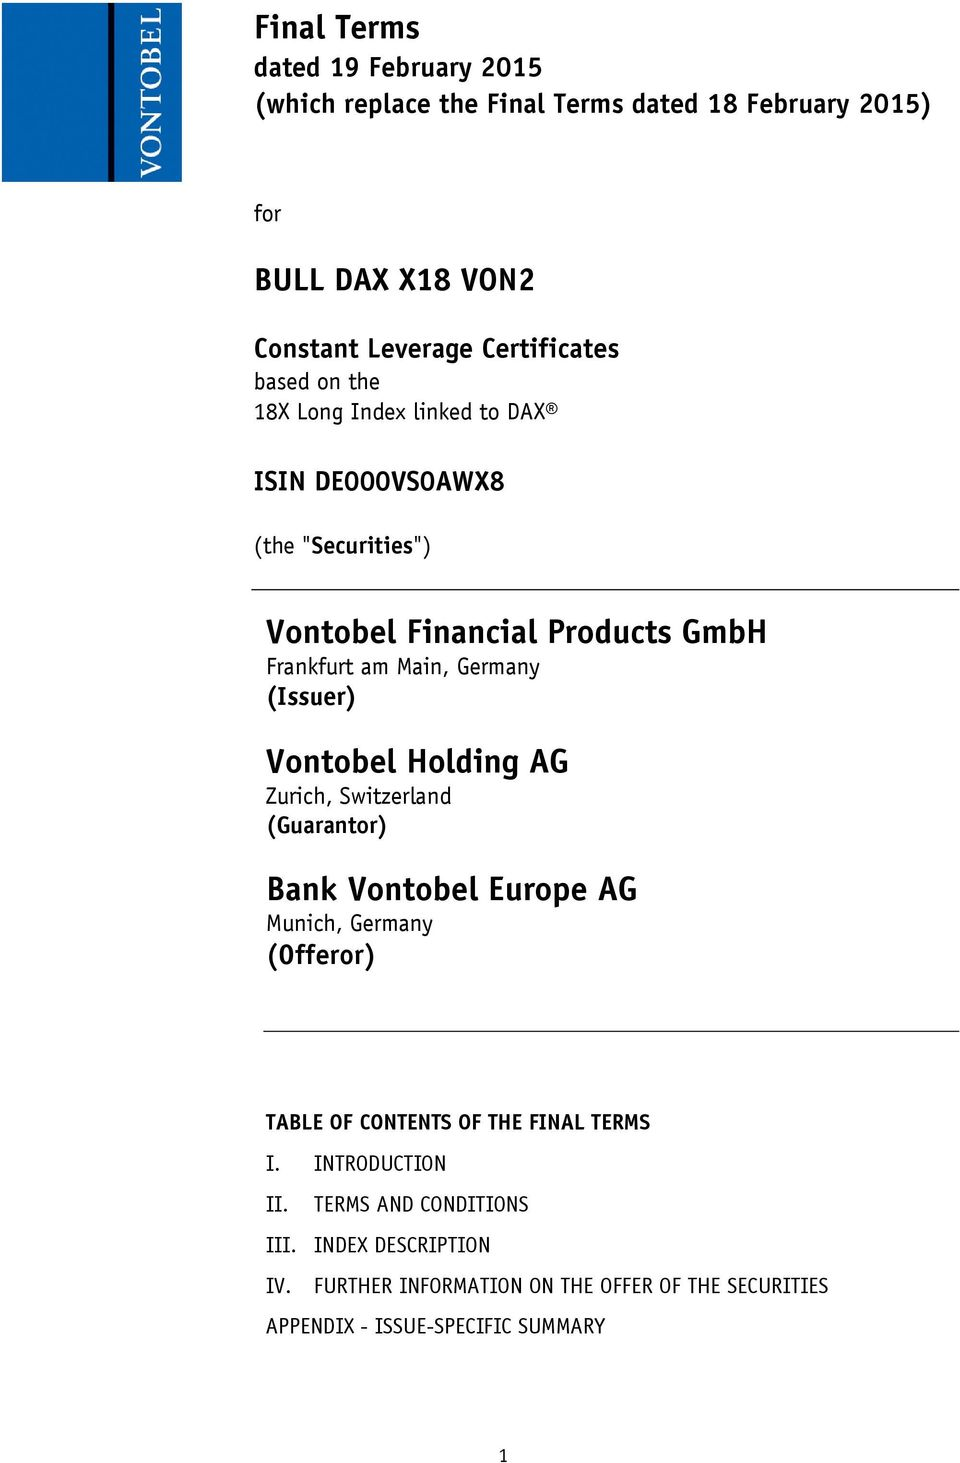 (Issuer) Vontobel Holding AG Zurich, Switzerland (Guarantor) Bank Vontobel Europe AG Munich, Germany (Offeror) TABLE OF CONTENTS OF THE FINAL